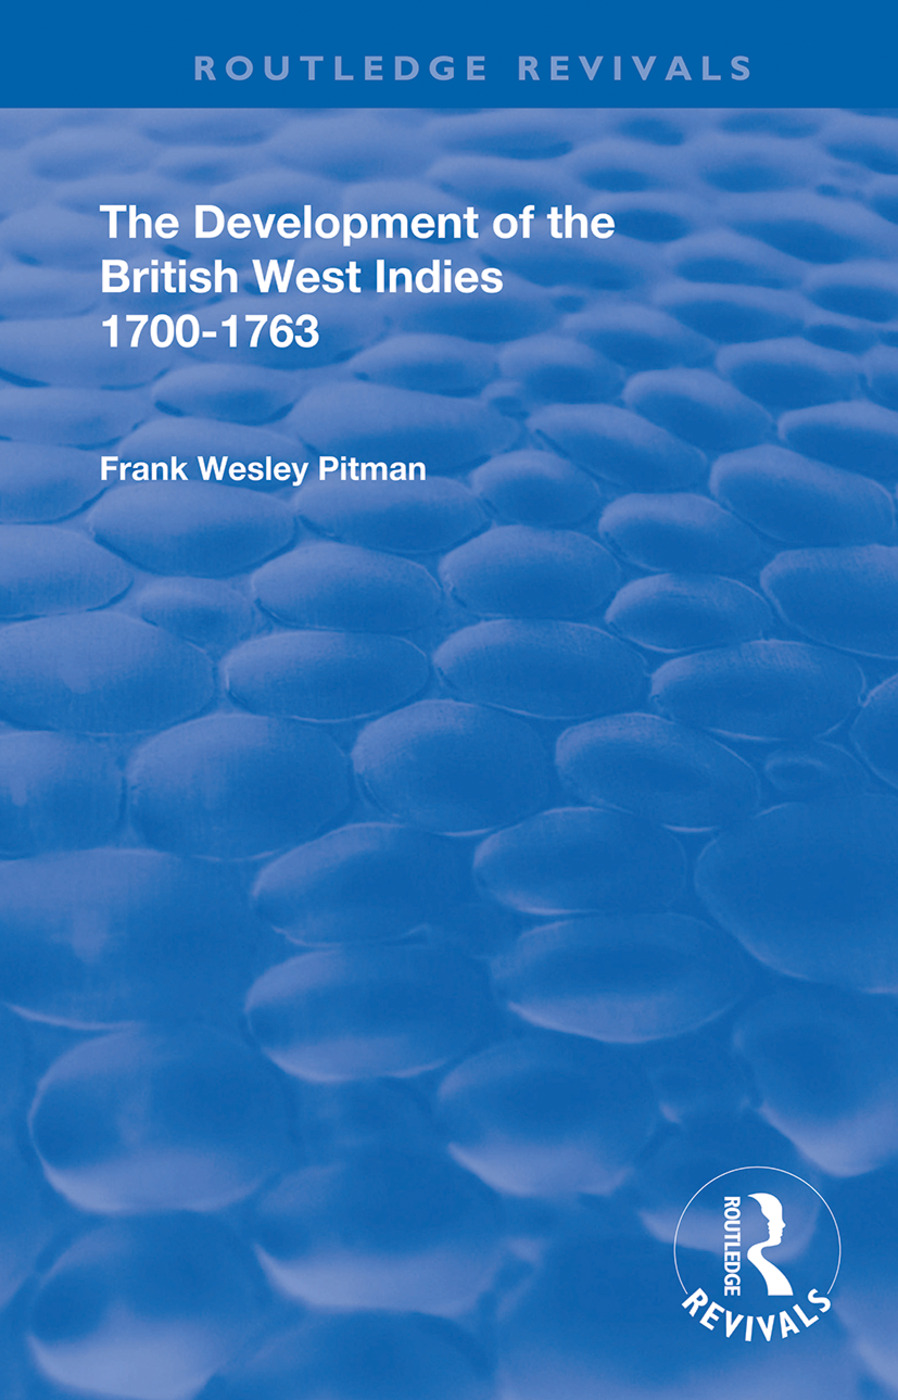 The Development of the British West Indies: 1700-1763 book cover